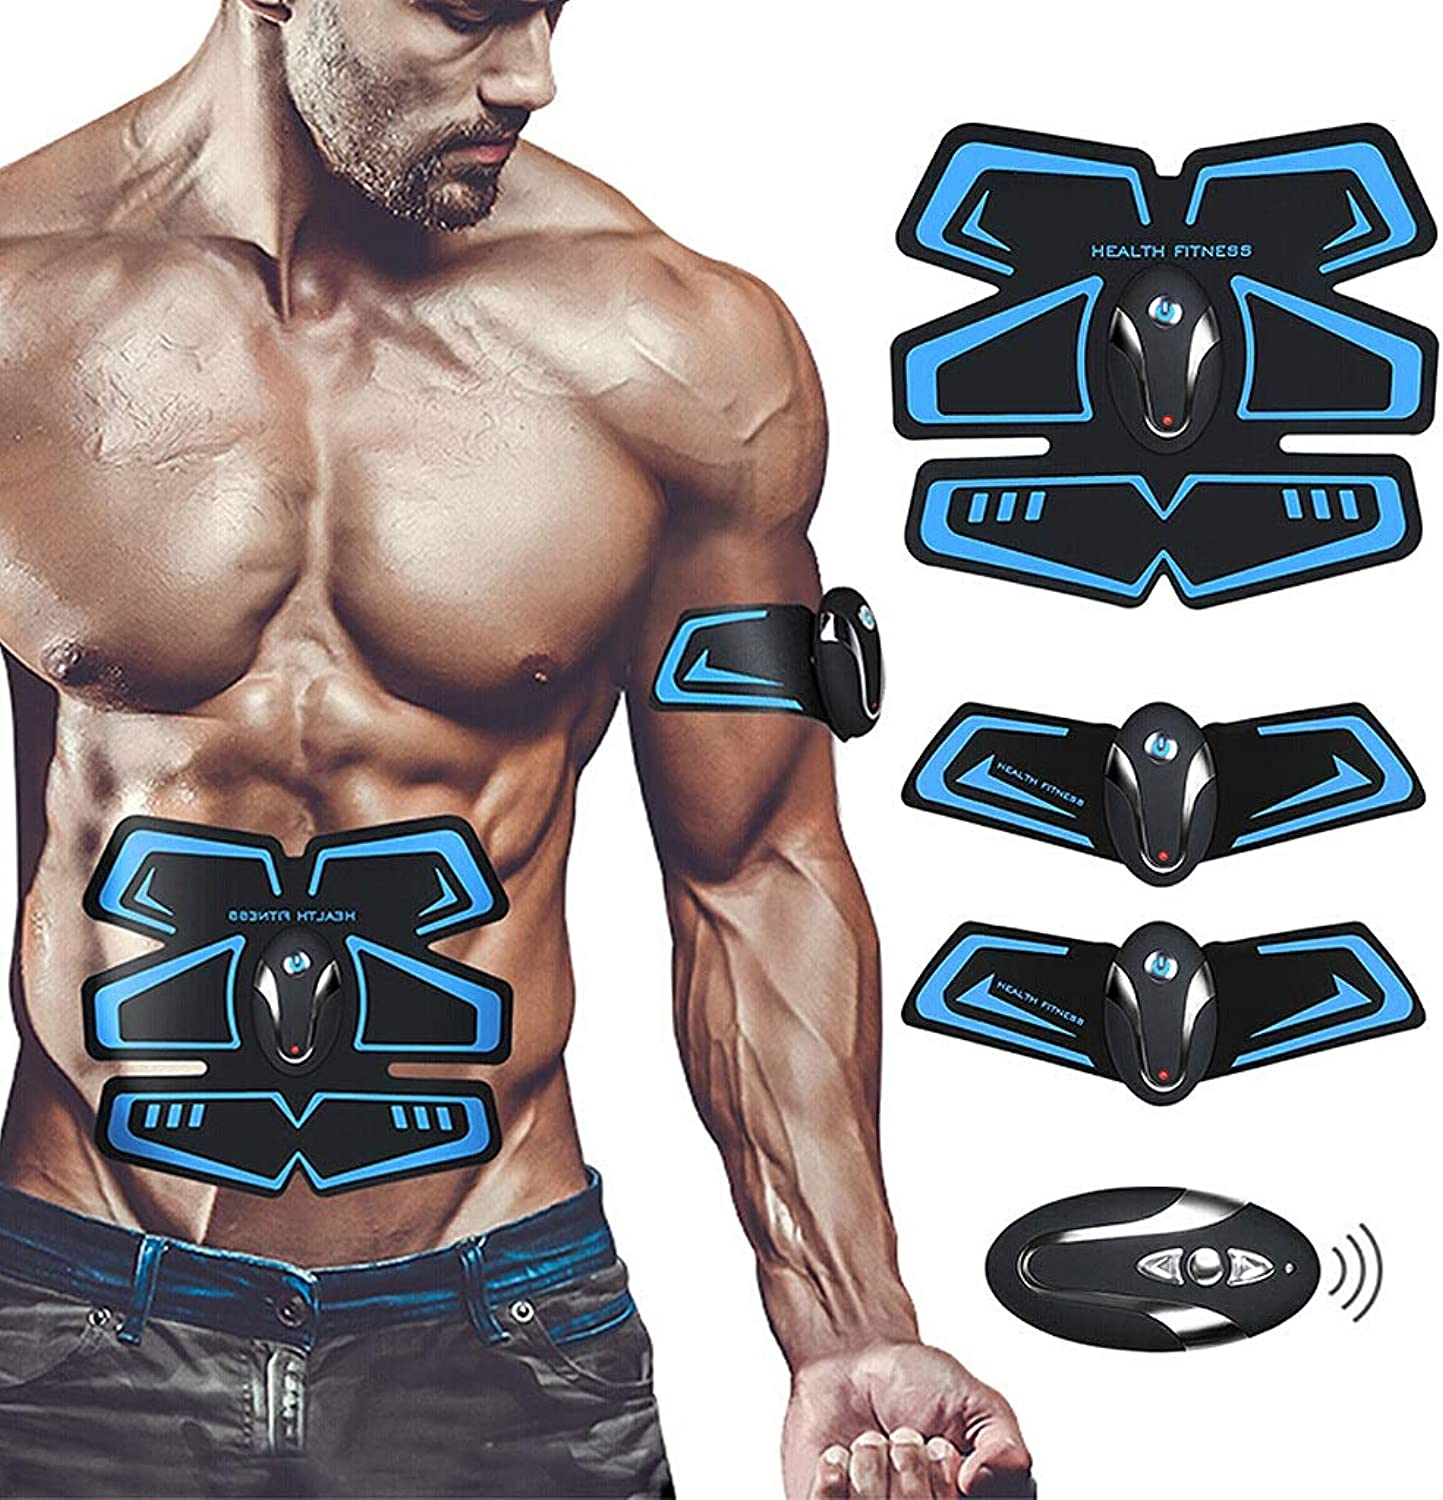 MS Abdominal Muscle Paste Smart Abdominal Fitness Equipment Abdominal Trainer Abdominal Muscle Trainer Lazy Exerciser